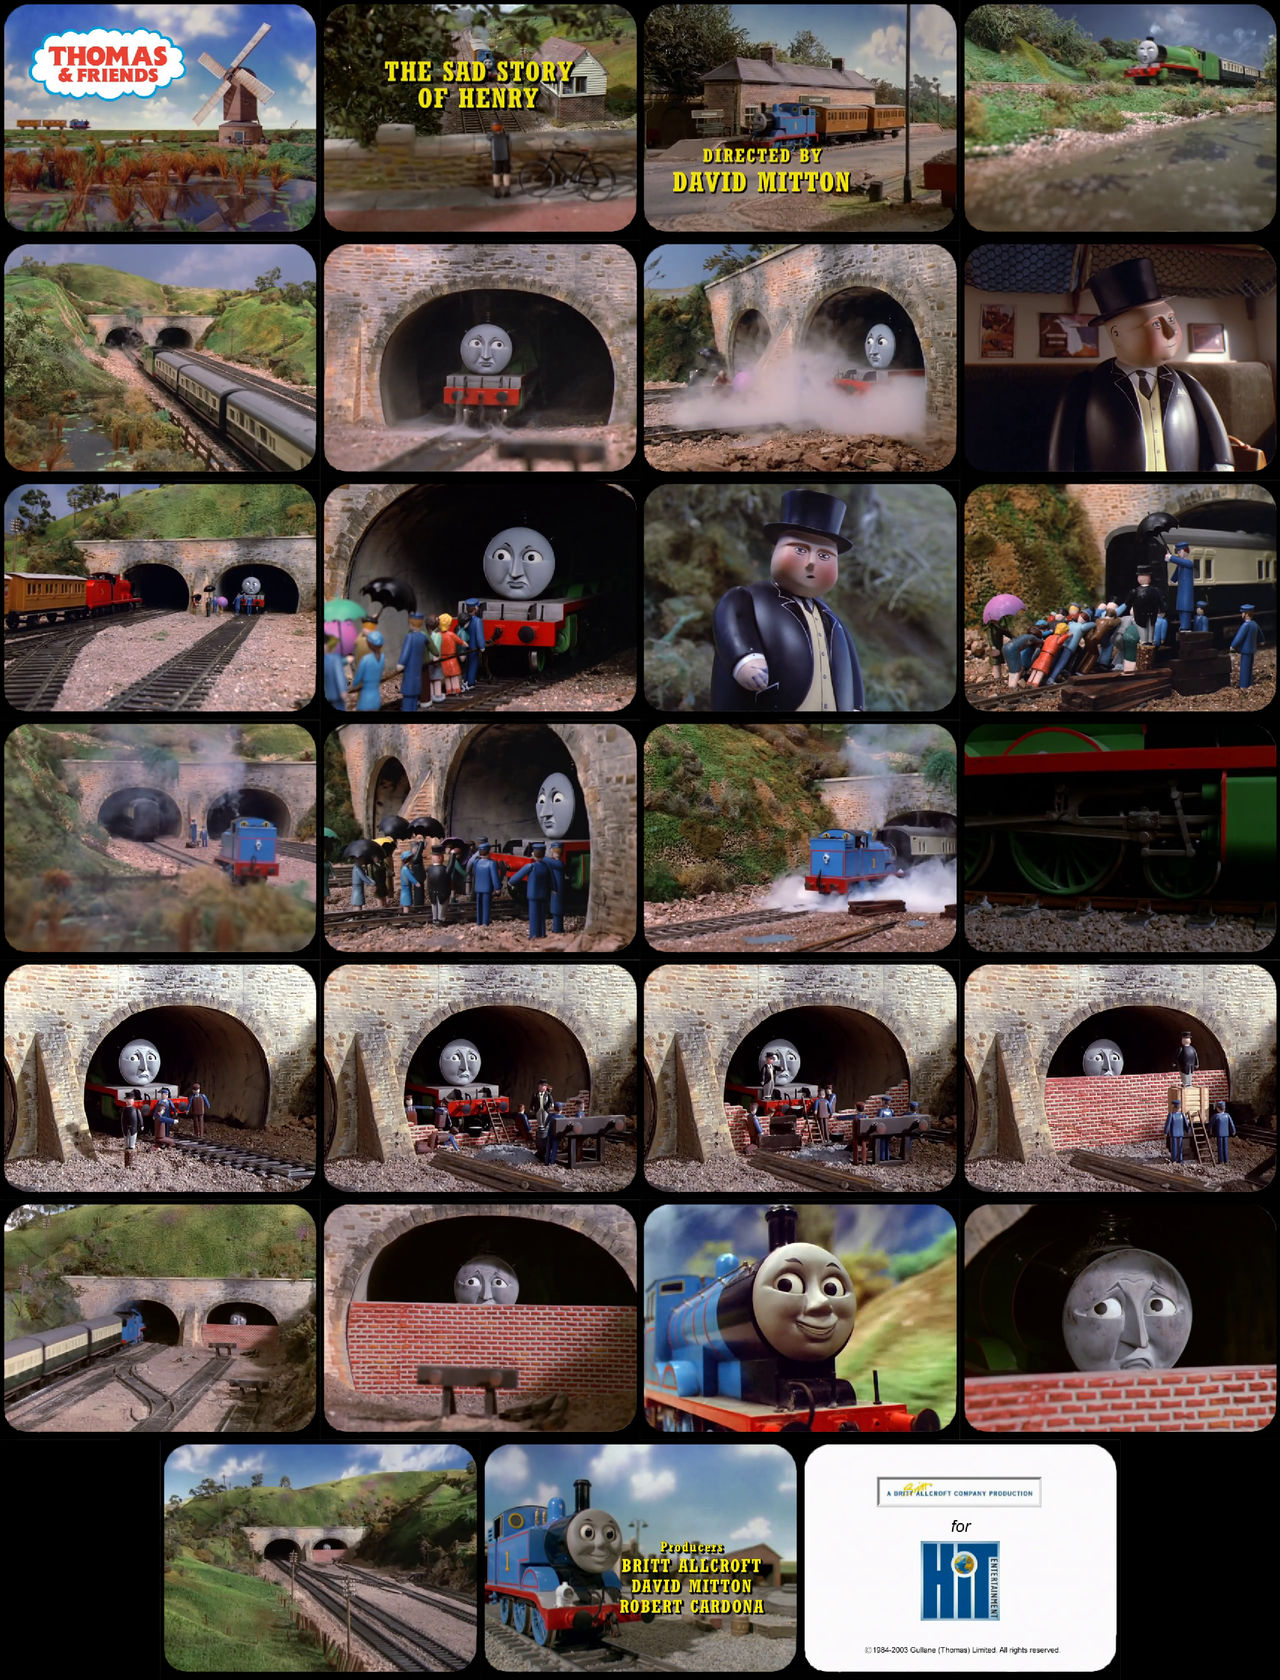 Thomas and Friends Episode 3 Tele-Snaps